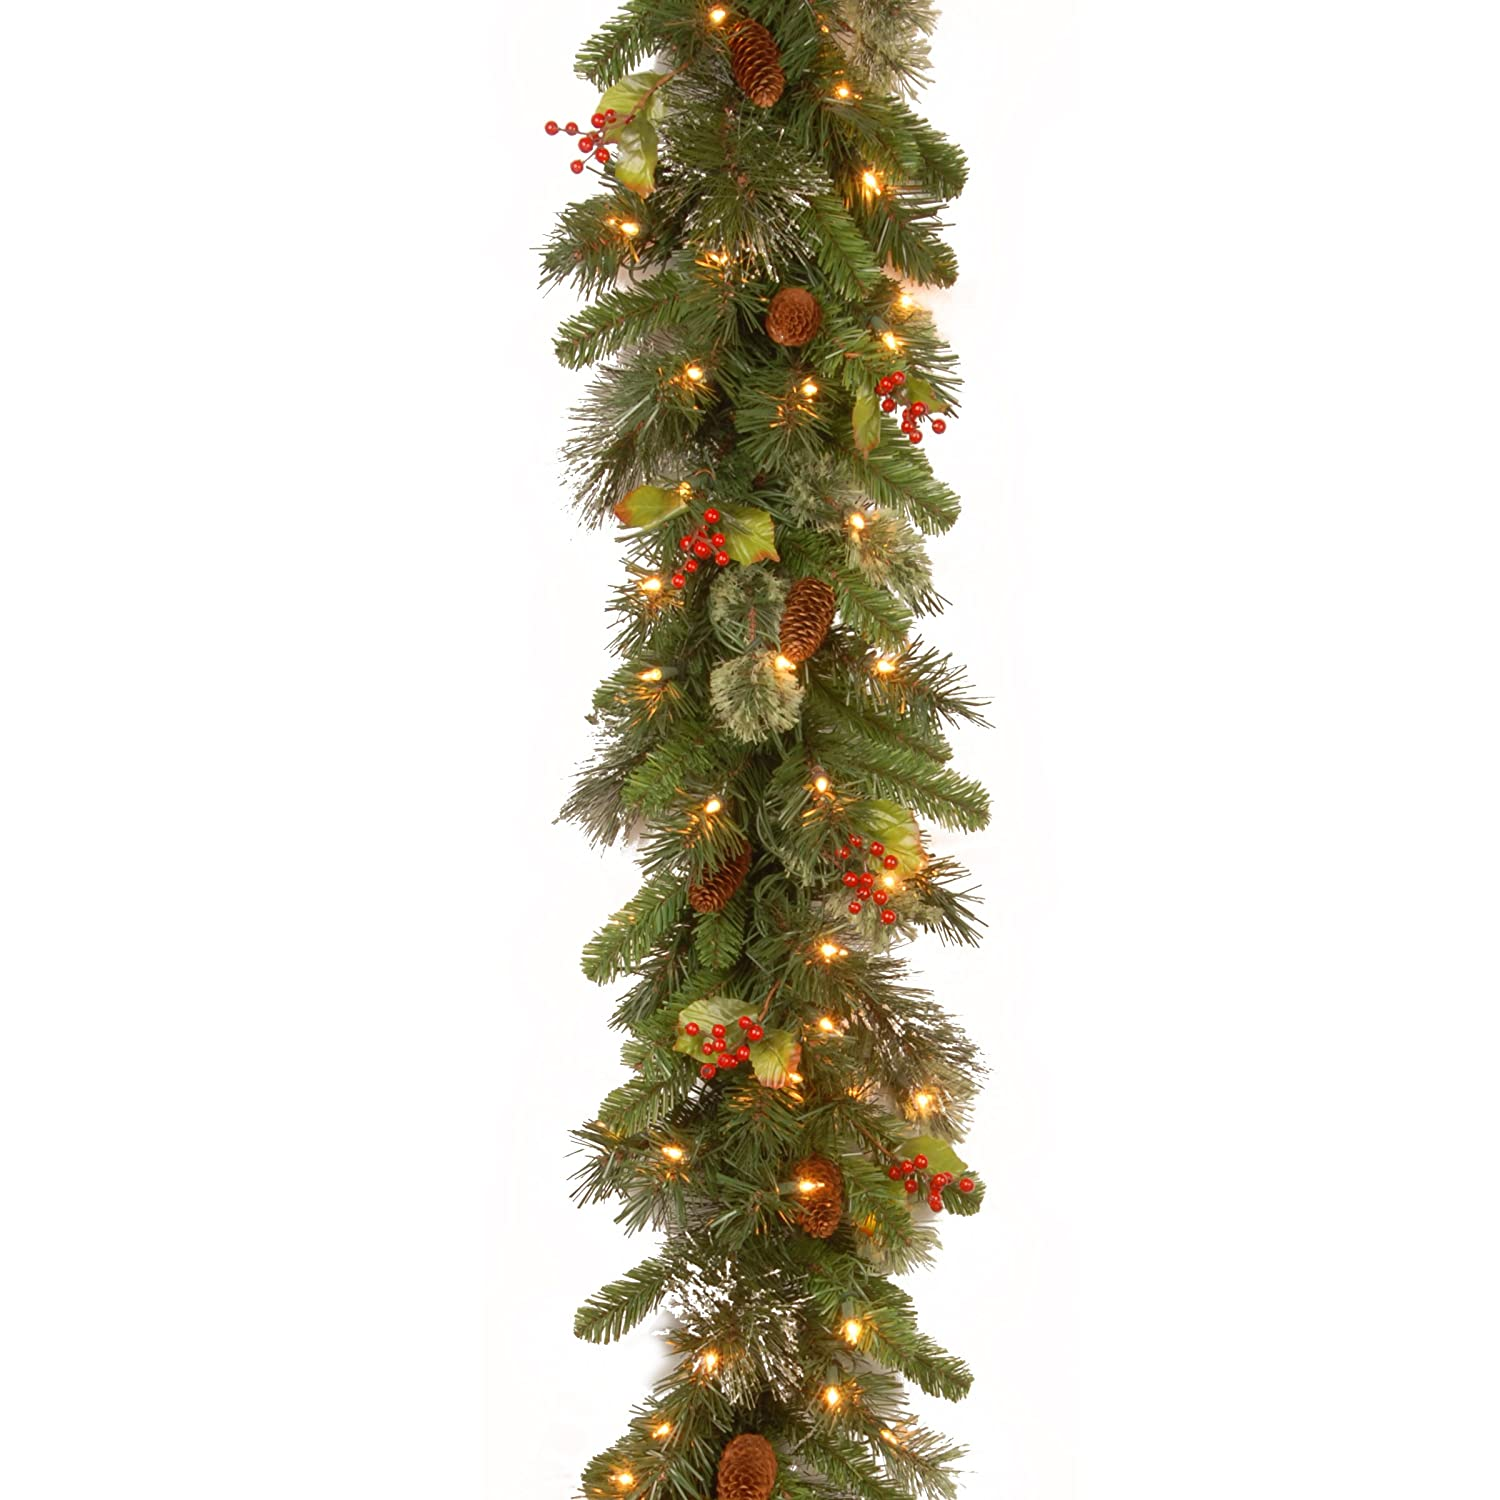 amazoncom national tree 9 foot by 12 inch wintry pine garland with red berries cones and snowflakes wp13009b1 home u0026 kitchen